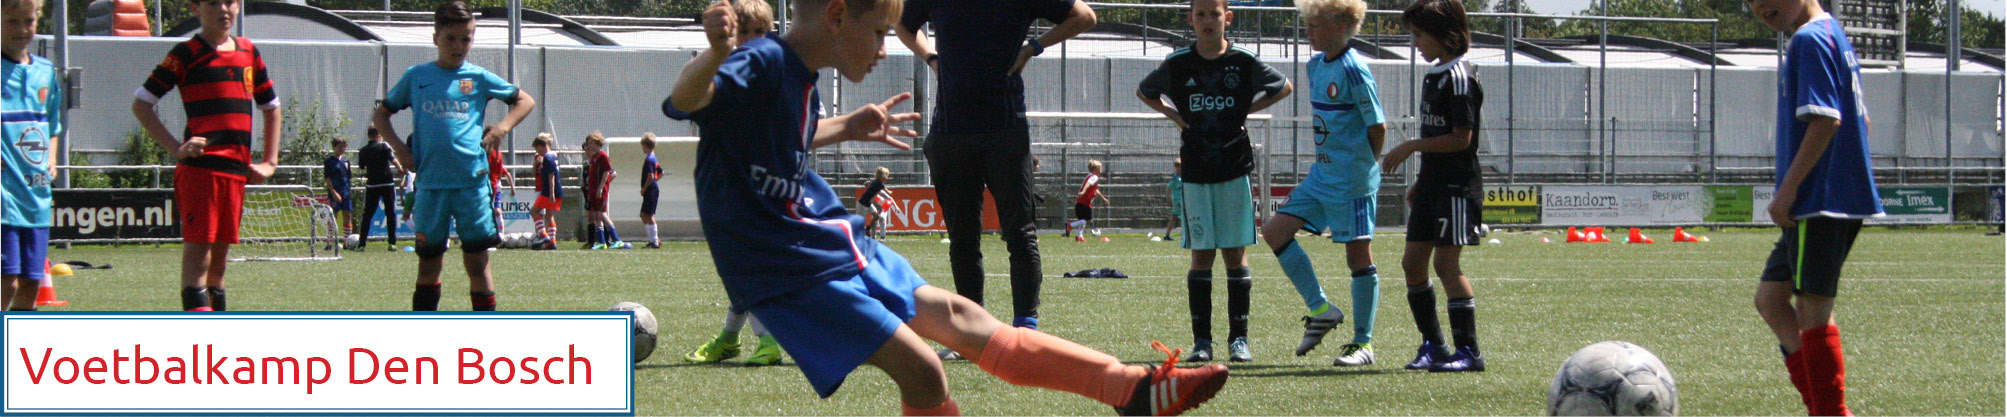 Nationale Voetbalkampen